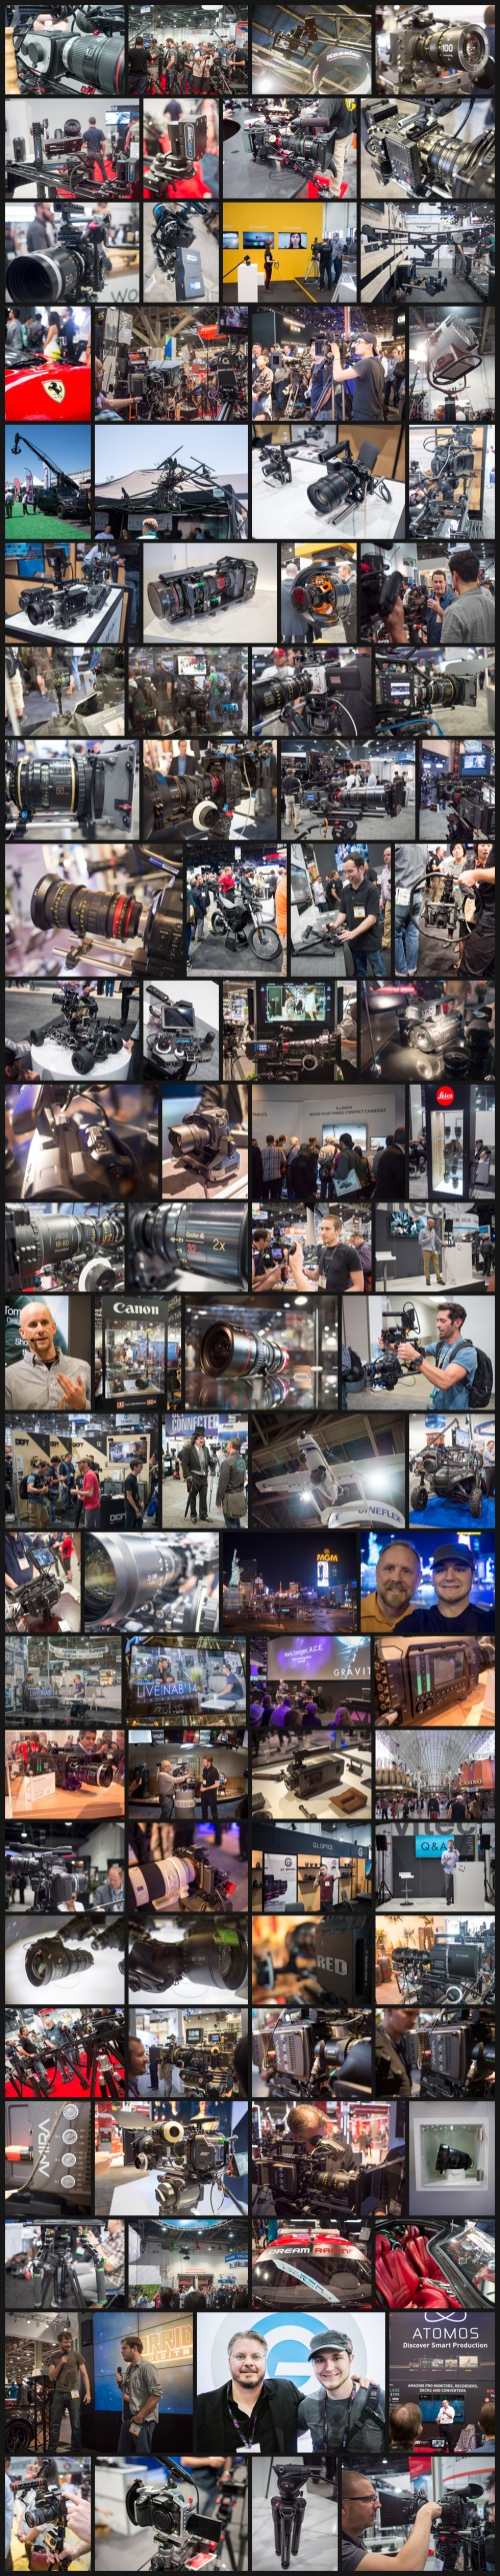 My Trip to NAB in Photos